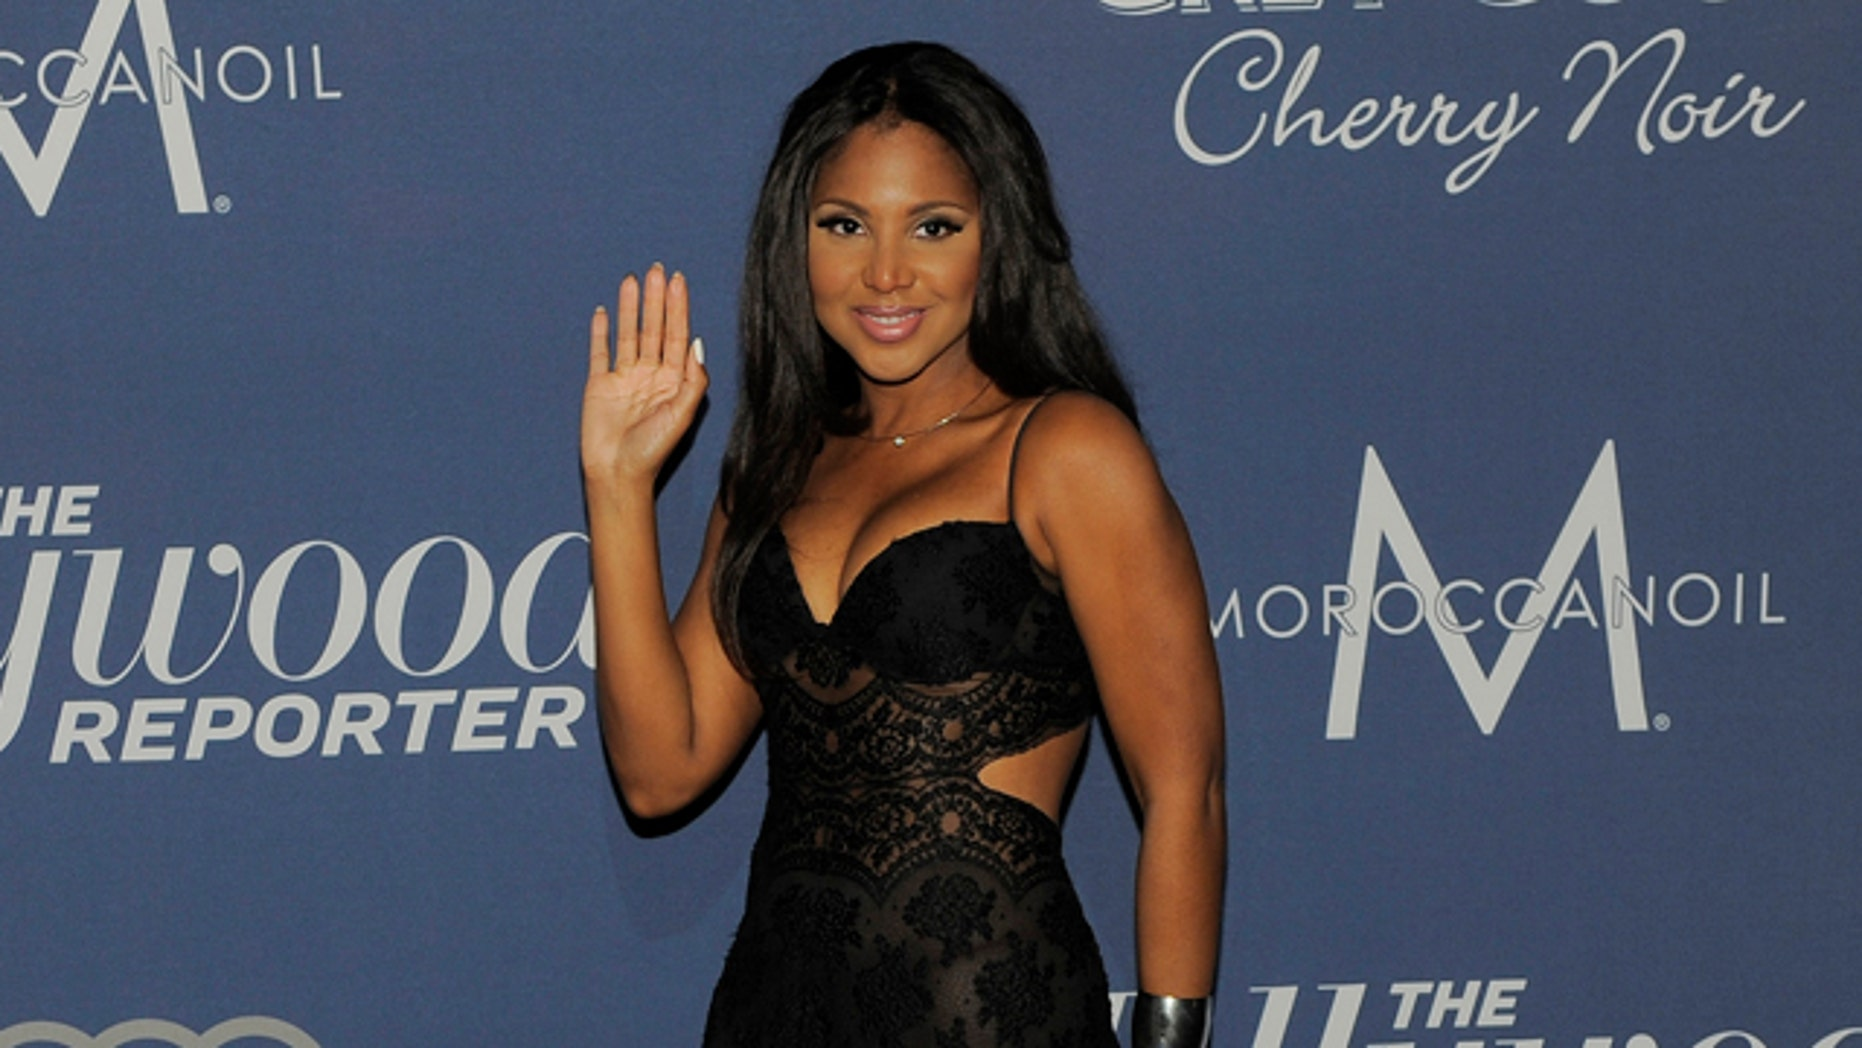 Feb. 23, 2012: Singer Toni Braxton is shown arriving at The Hollywood Reporter Nominees Night in Los Angeles.